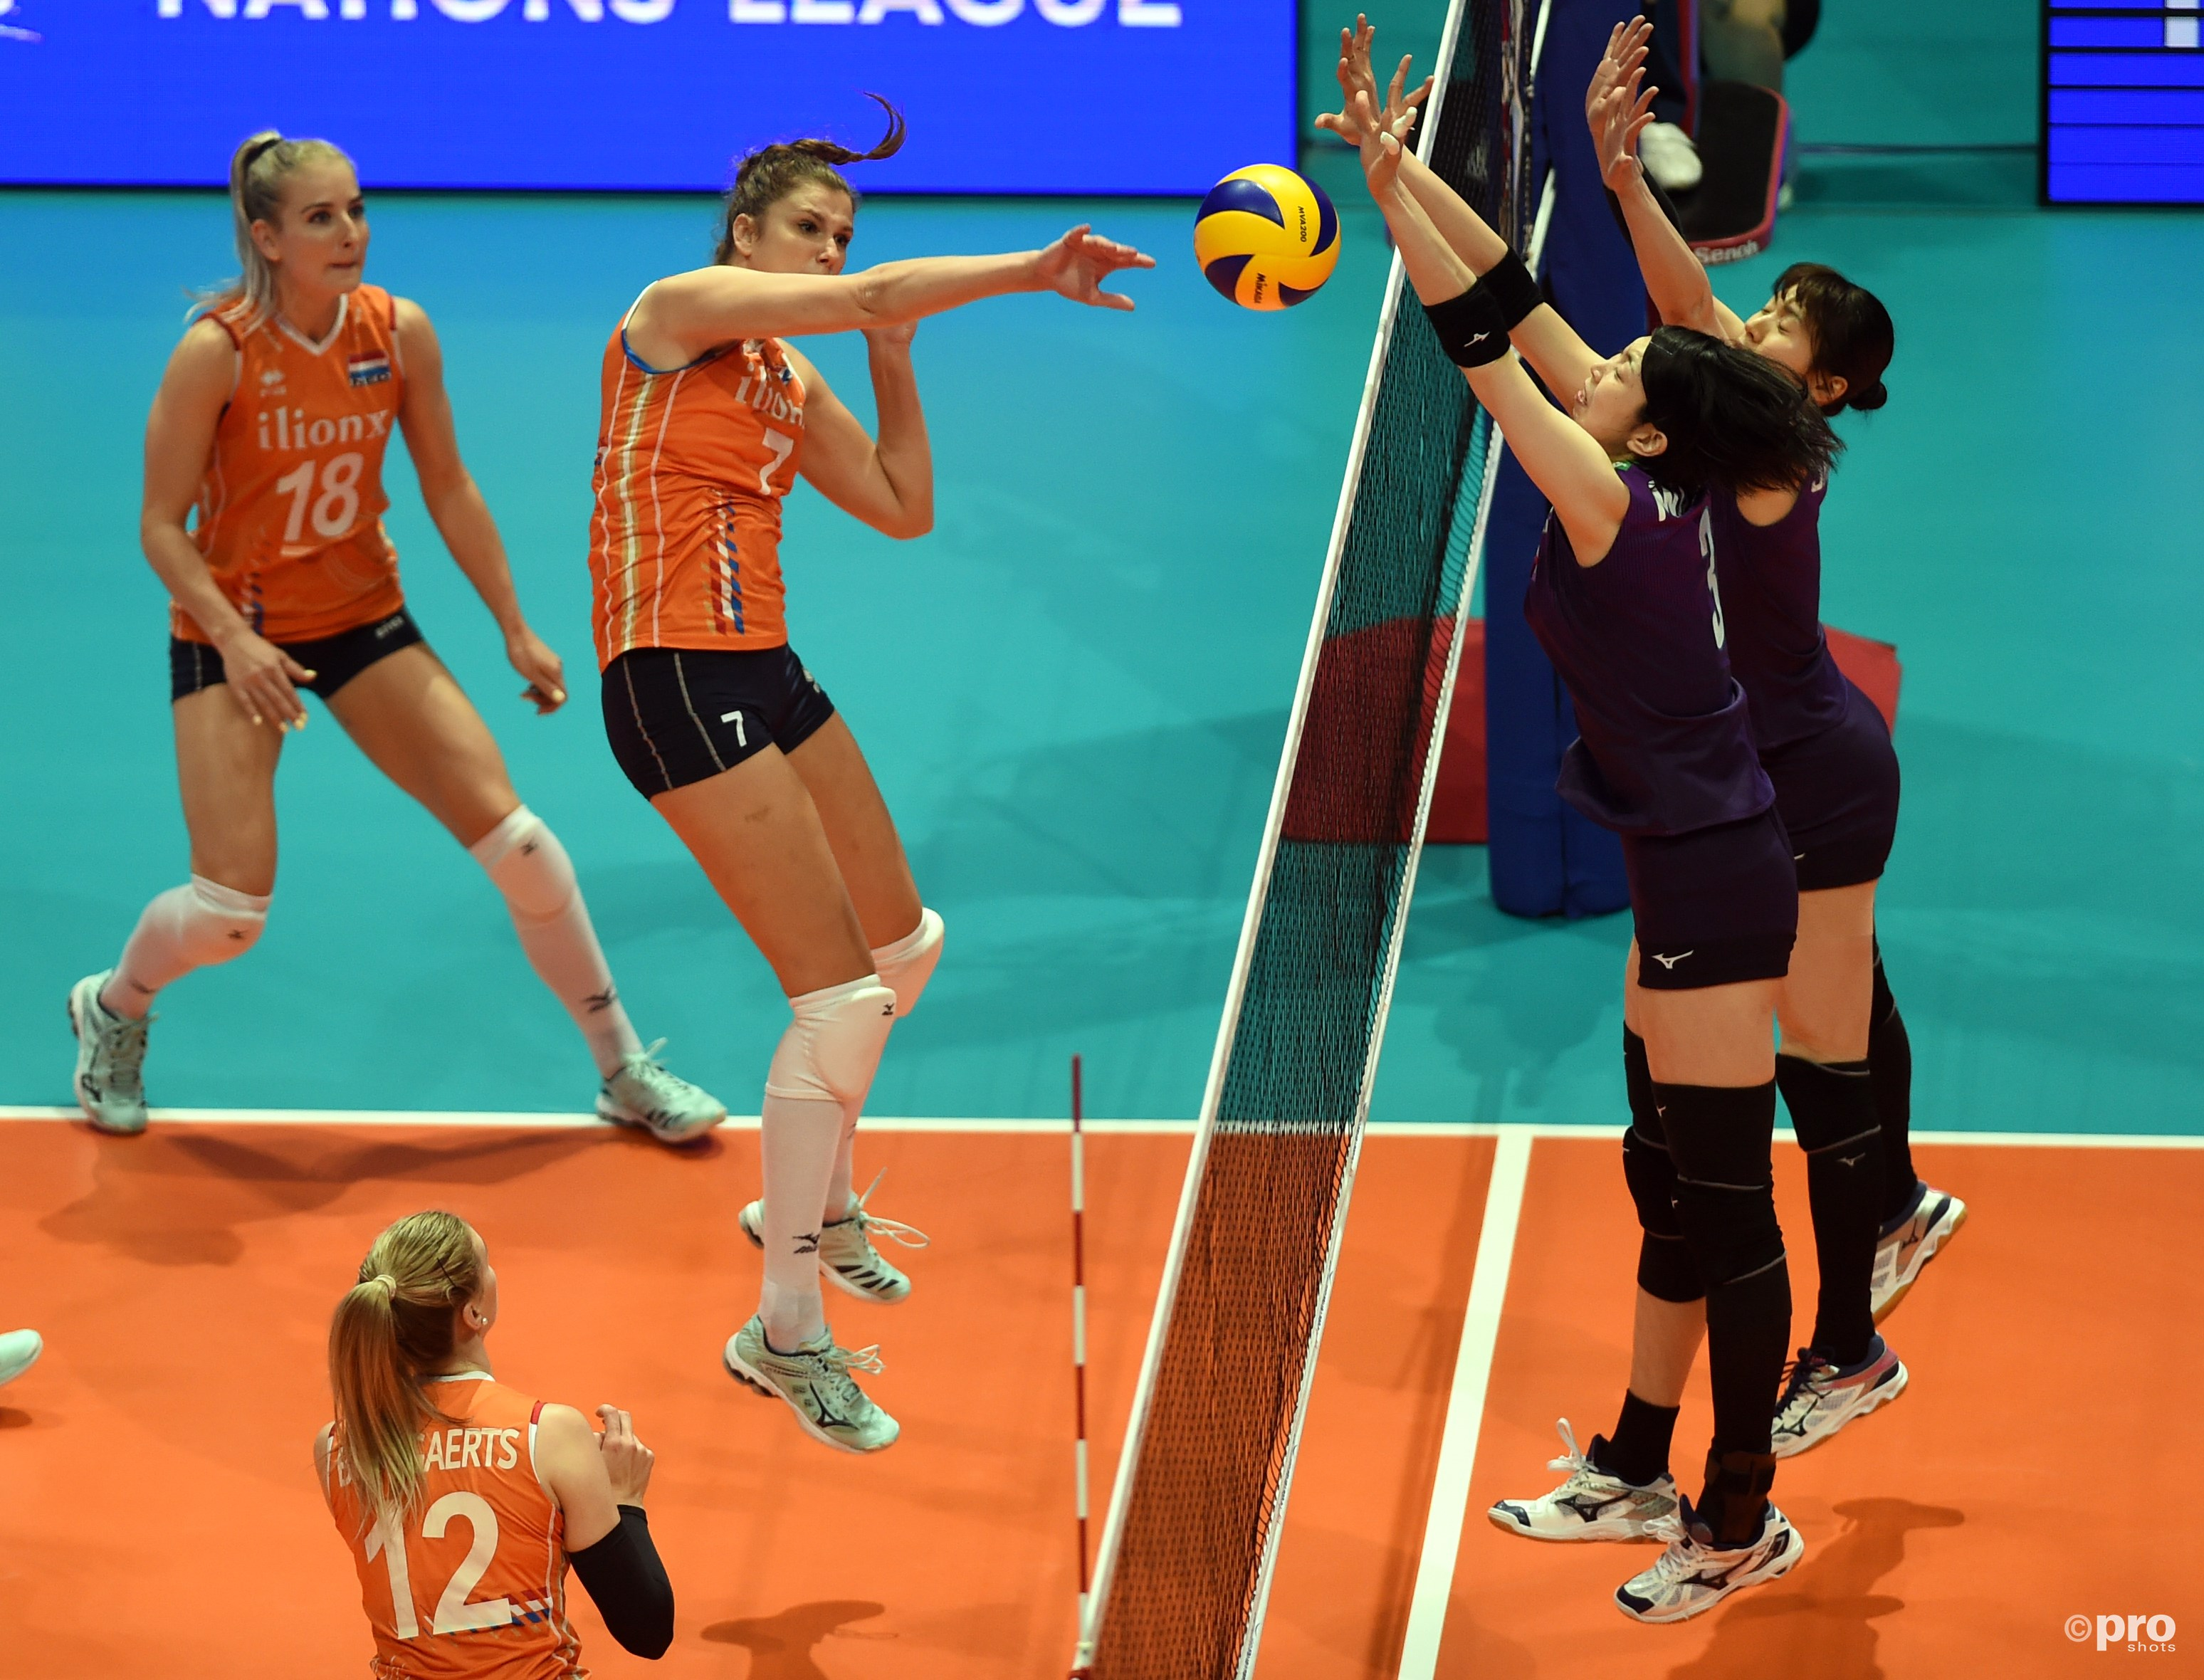 Nederlandse volleybalsters opnieuw onderuit in Nations League (Pro Shots / SIPA USA)